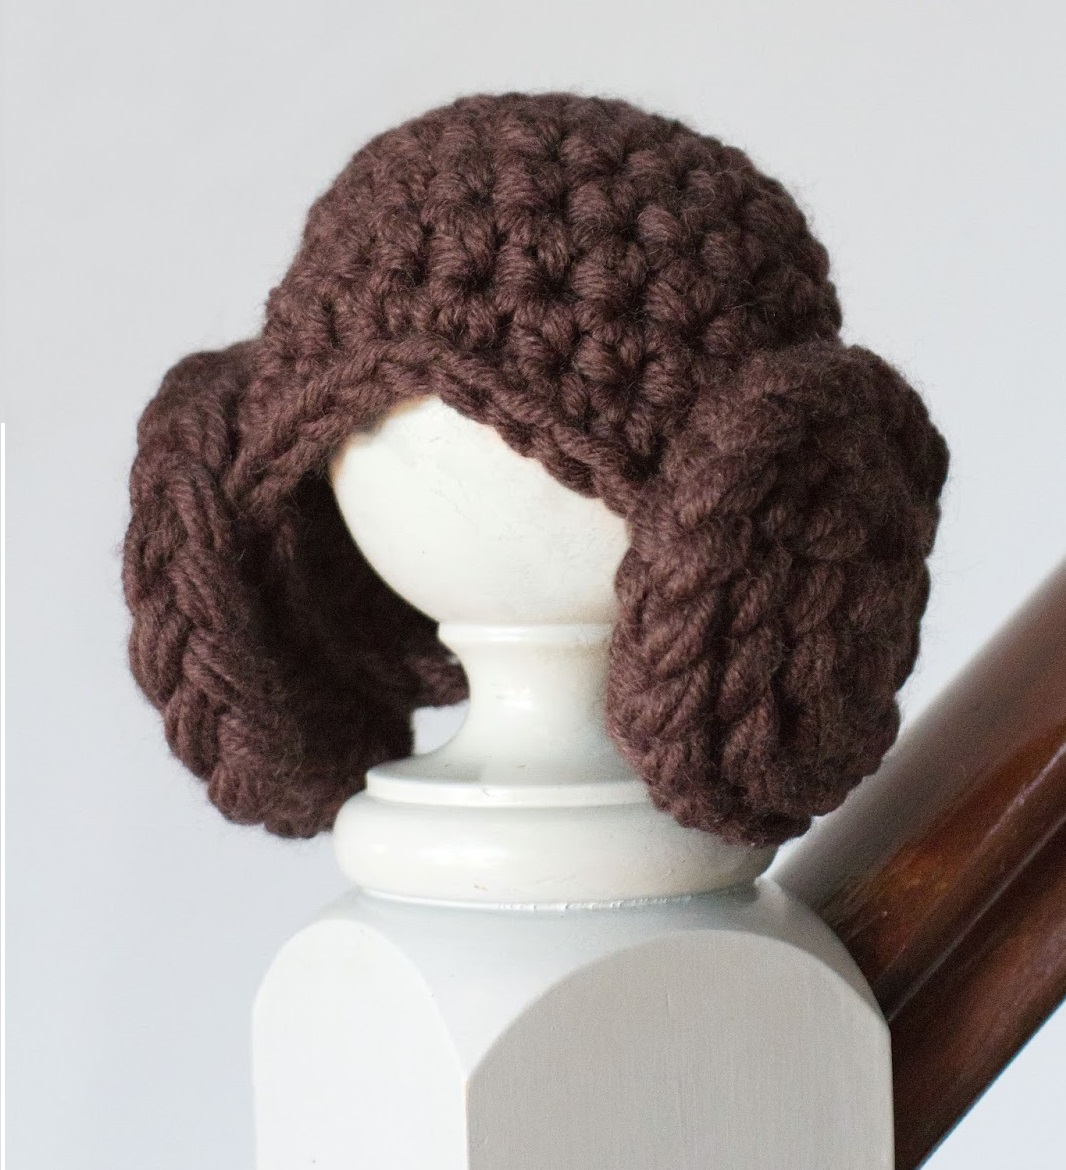 The Star Wars Crochet Patterns You\'re Looking For - Stitch and Unwind